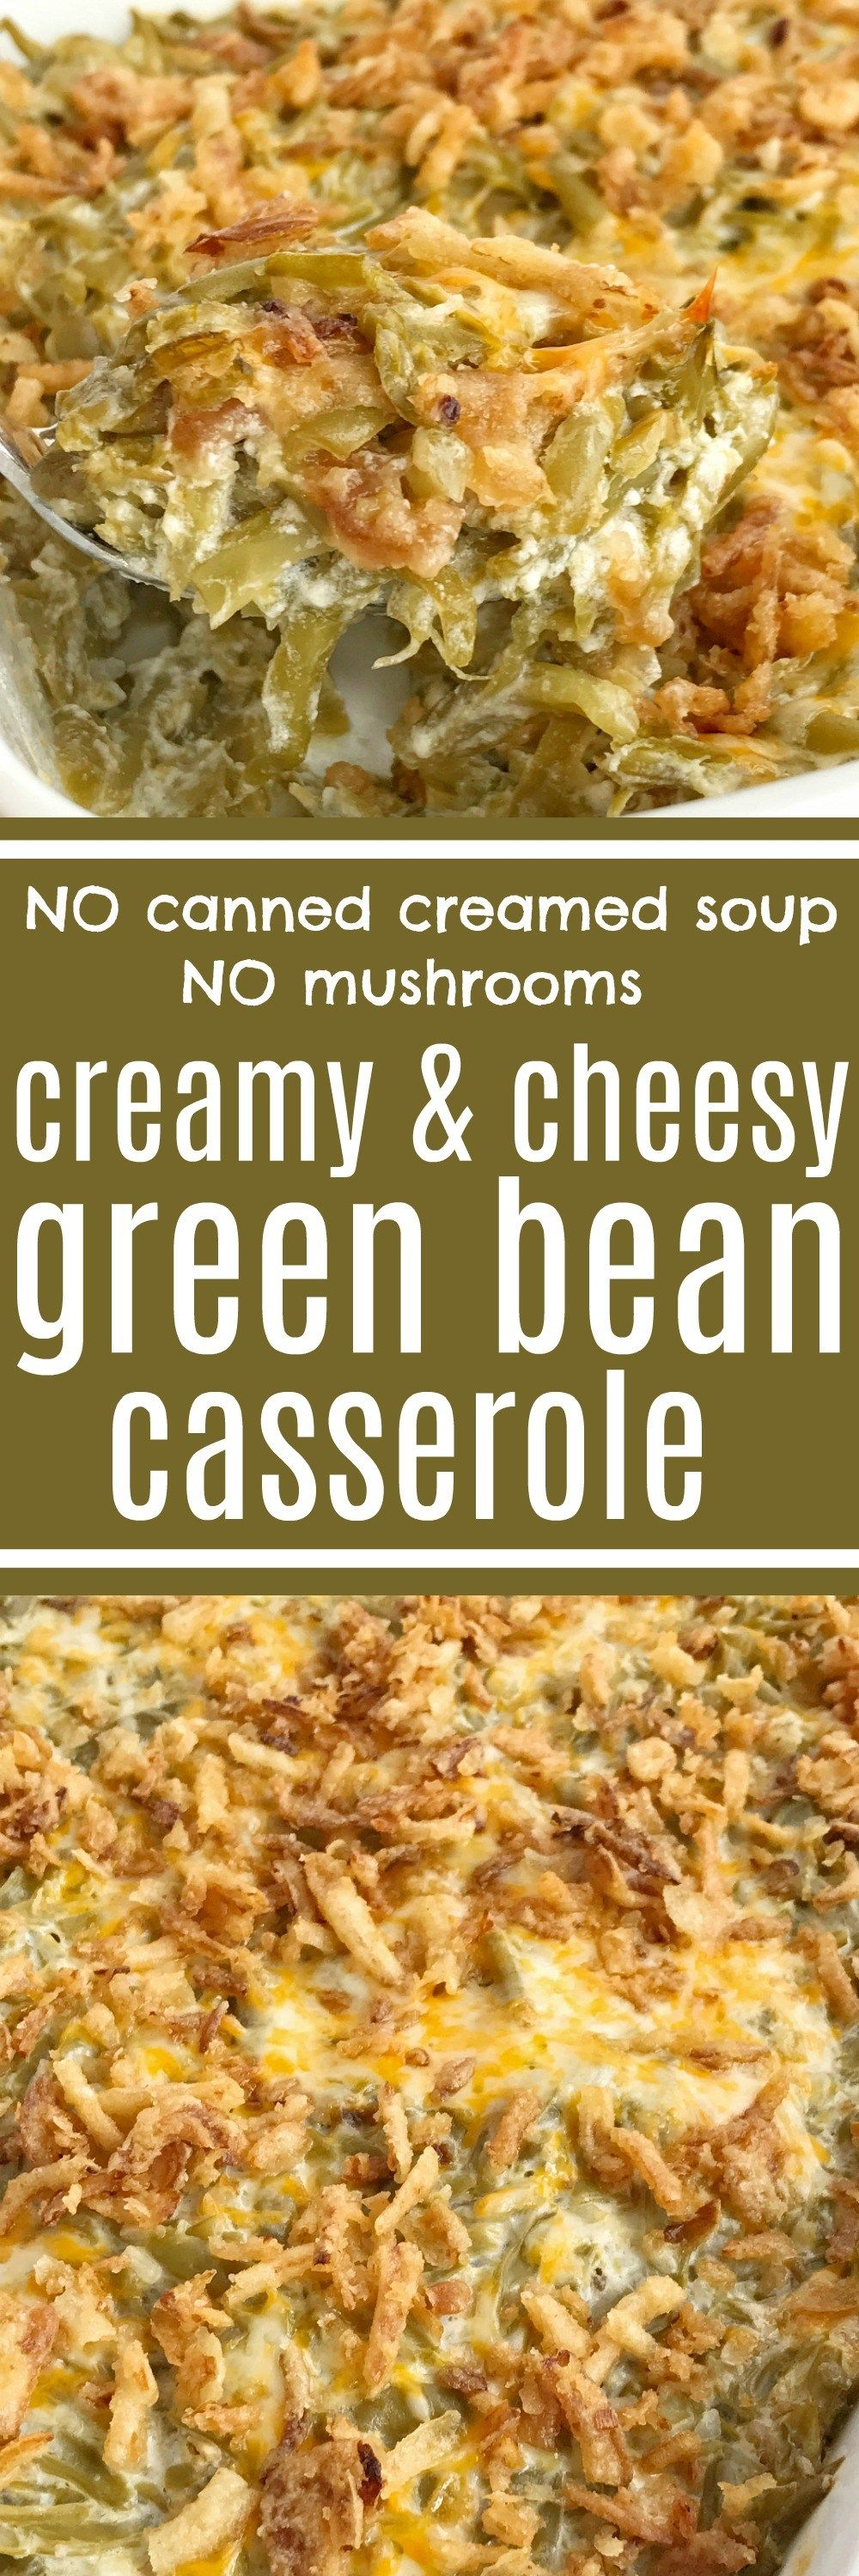 Look no further for the best creamy cheesy green bean casserole! Only a few simple ingredients, canned green beans, and a few minutes prep is all you need for the best green bean casserole. No creamed soup and no mushrooms. This recipe is a must have side dish for Thanksgiving dinner   www.togetherasfamily.com #greenbeancasserole #sidedish #thanksgivingdinner #thanksgiving #casserole #greenbeans #greenbeancasserole